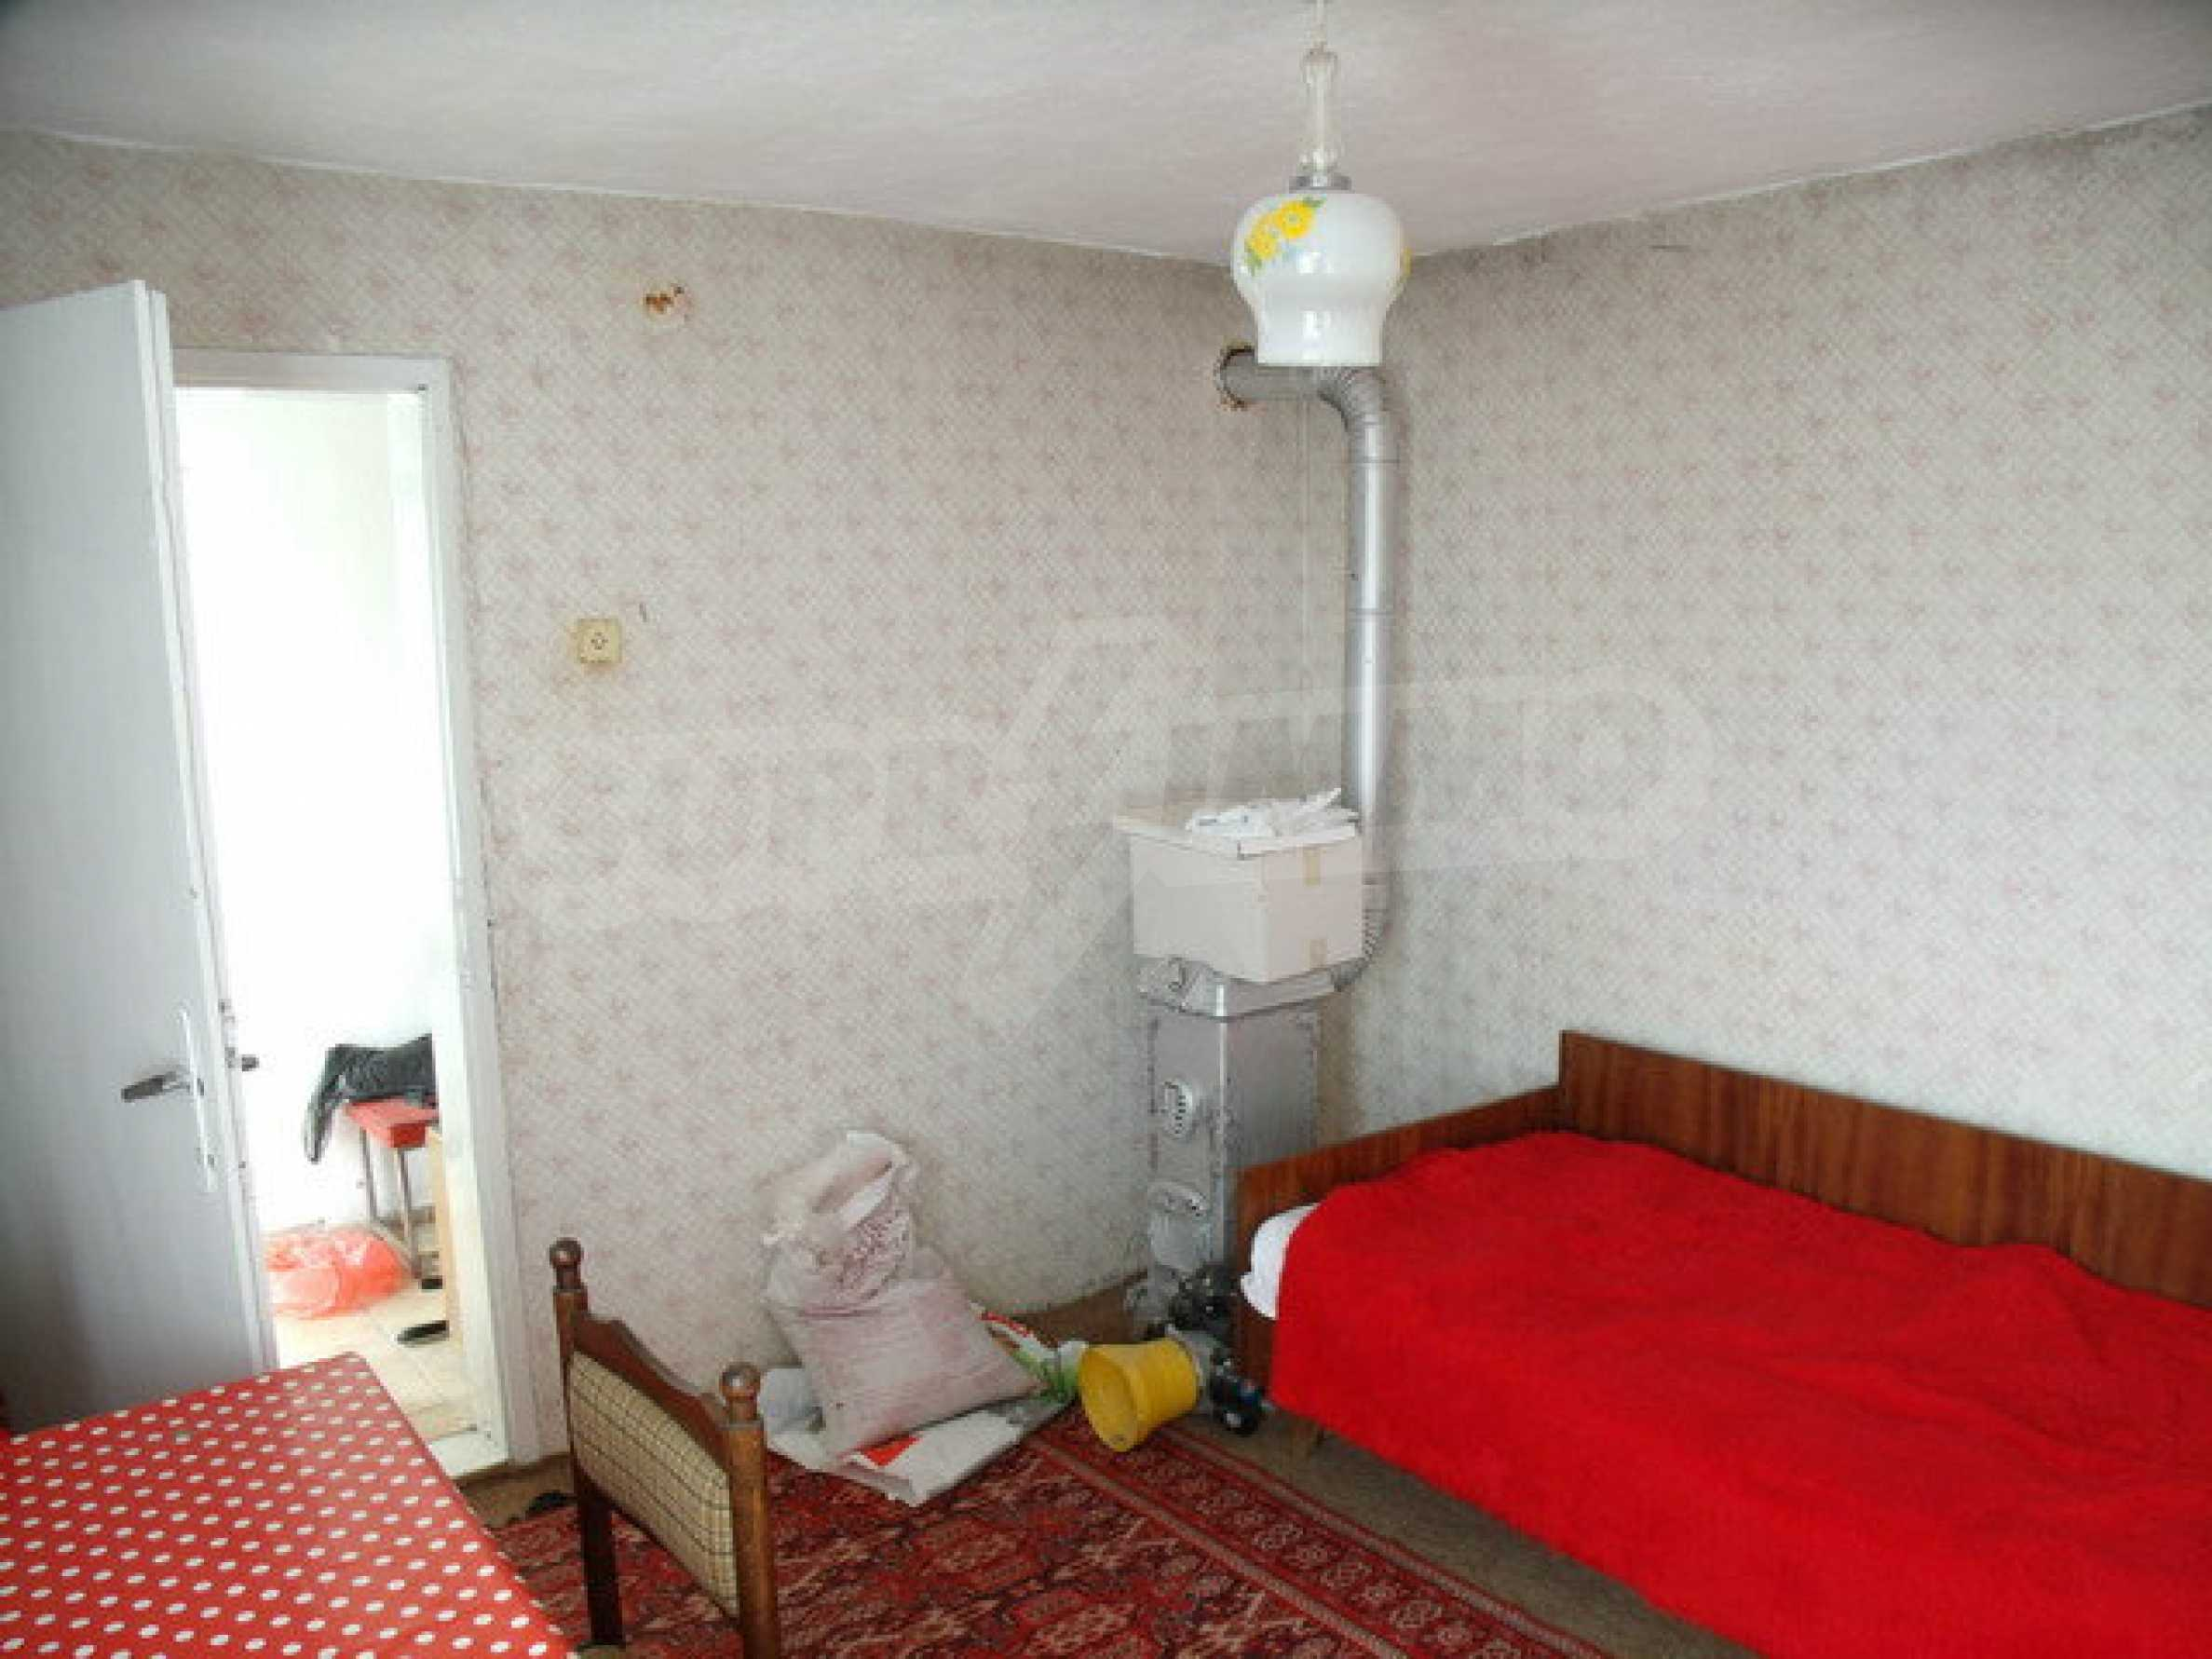 House in a small town, 15 km. from the old capital of Veliko Tarnovo 23